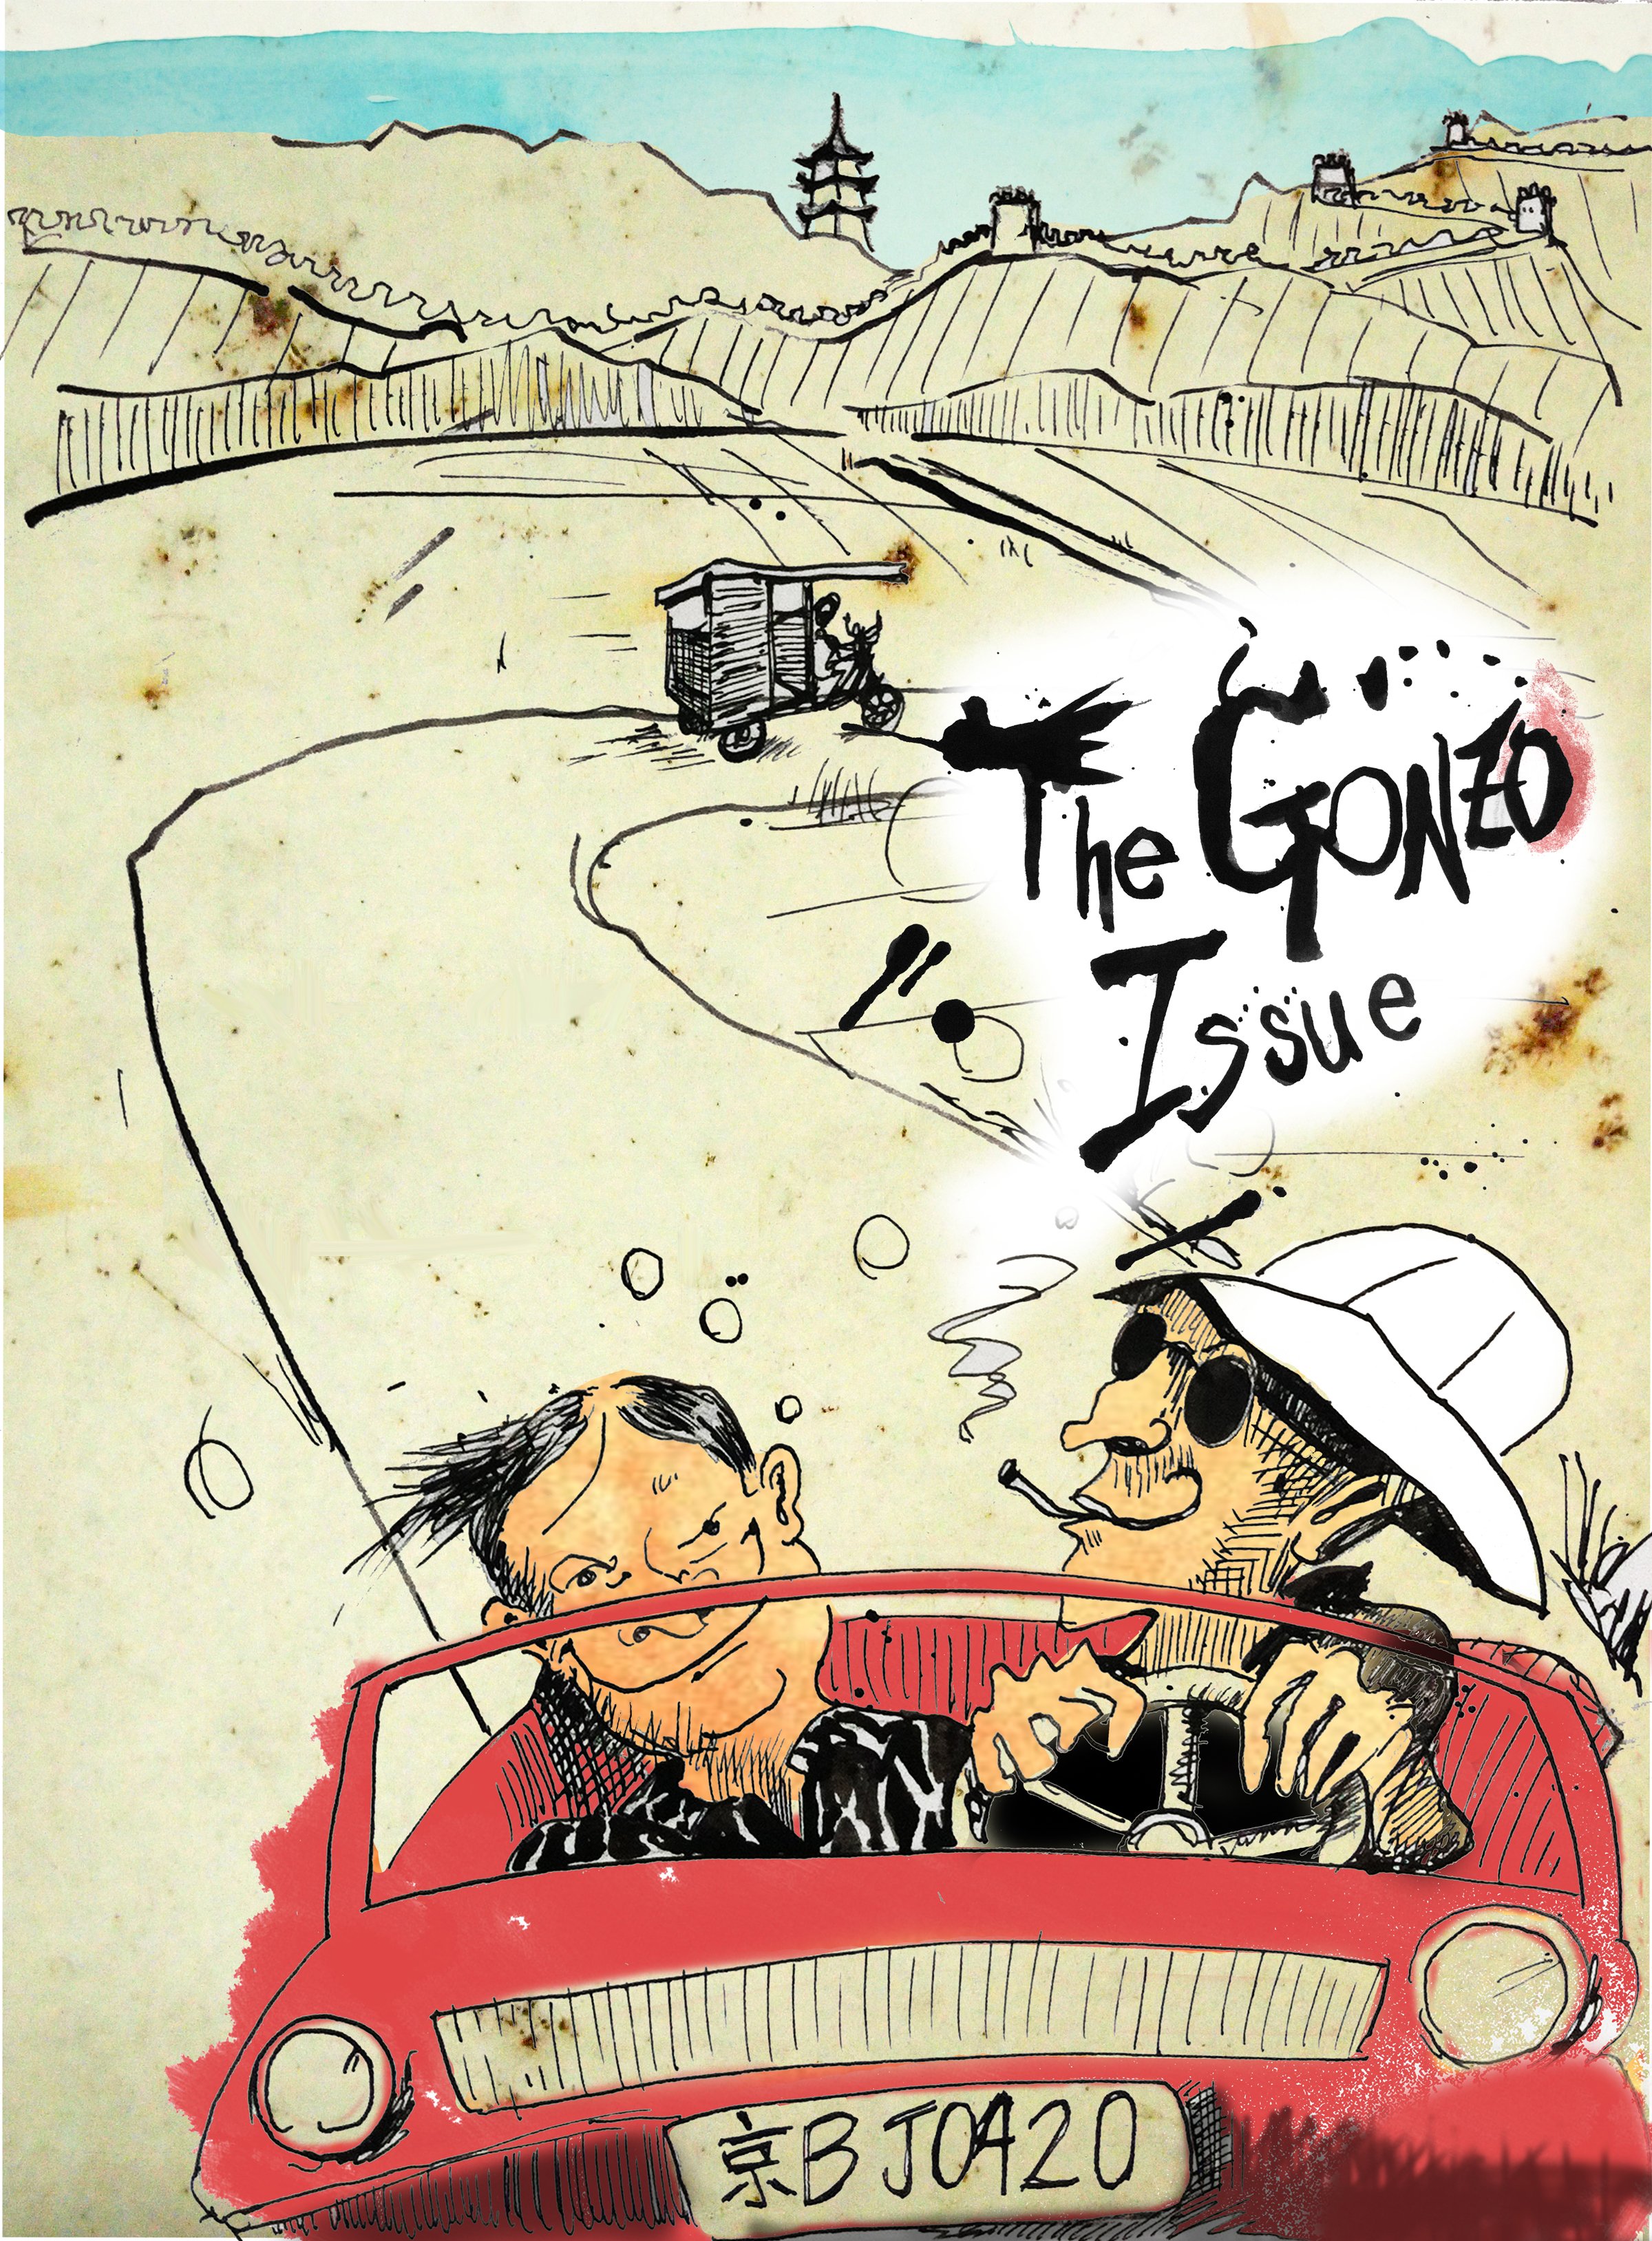 gonzo cover2 small.jpg